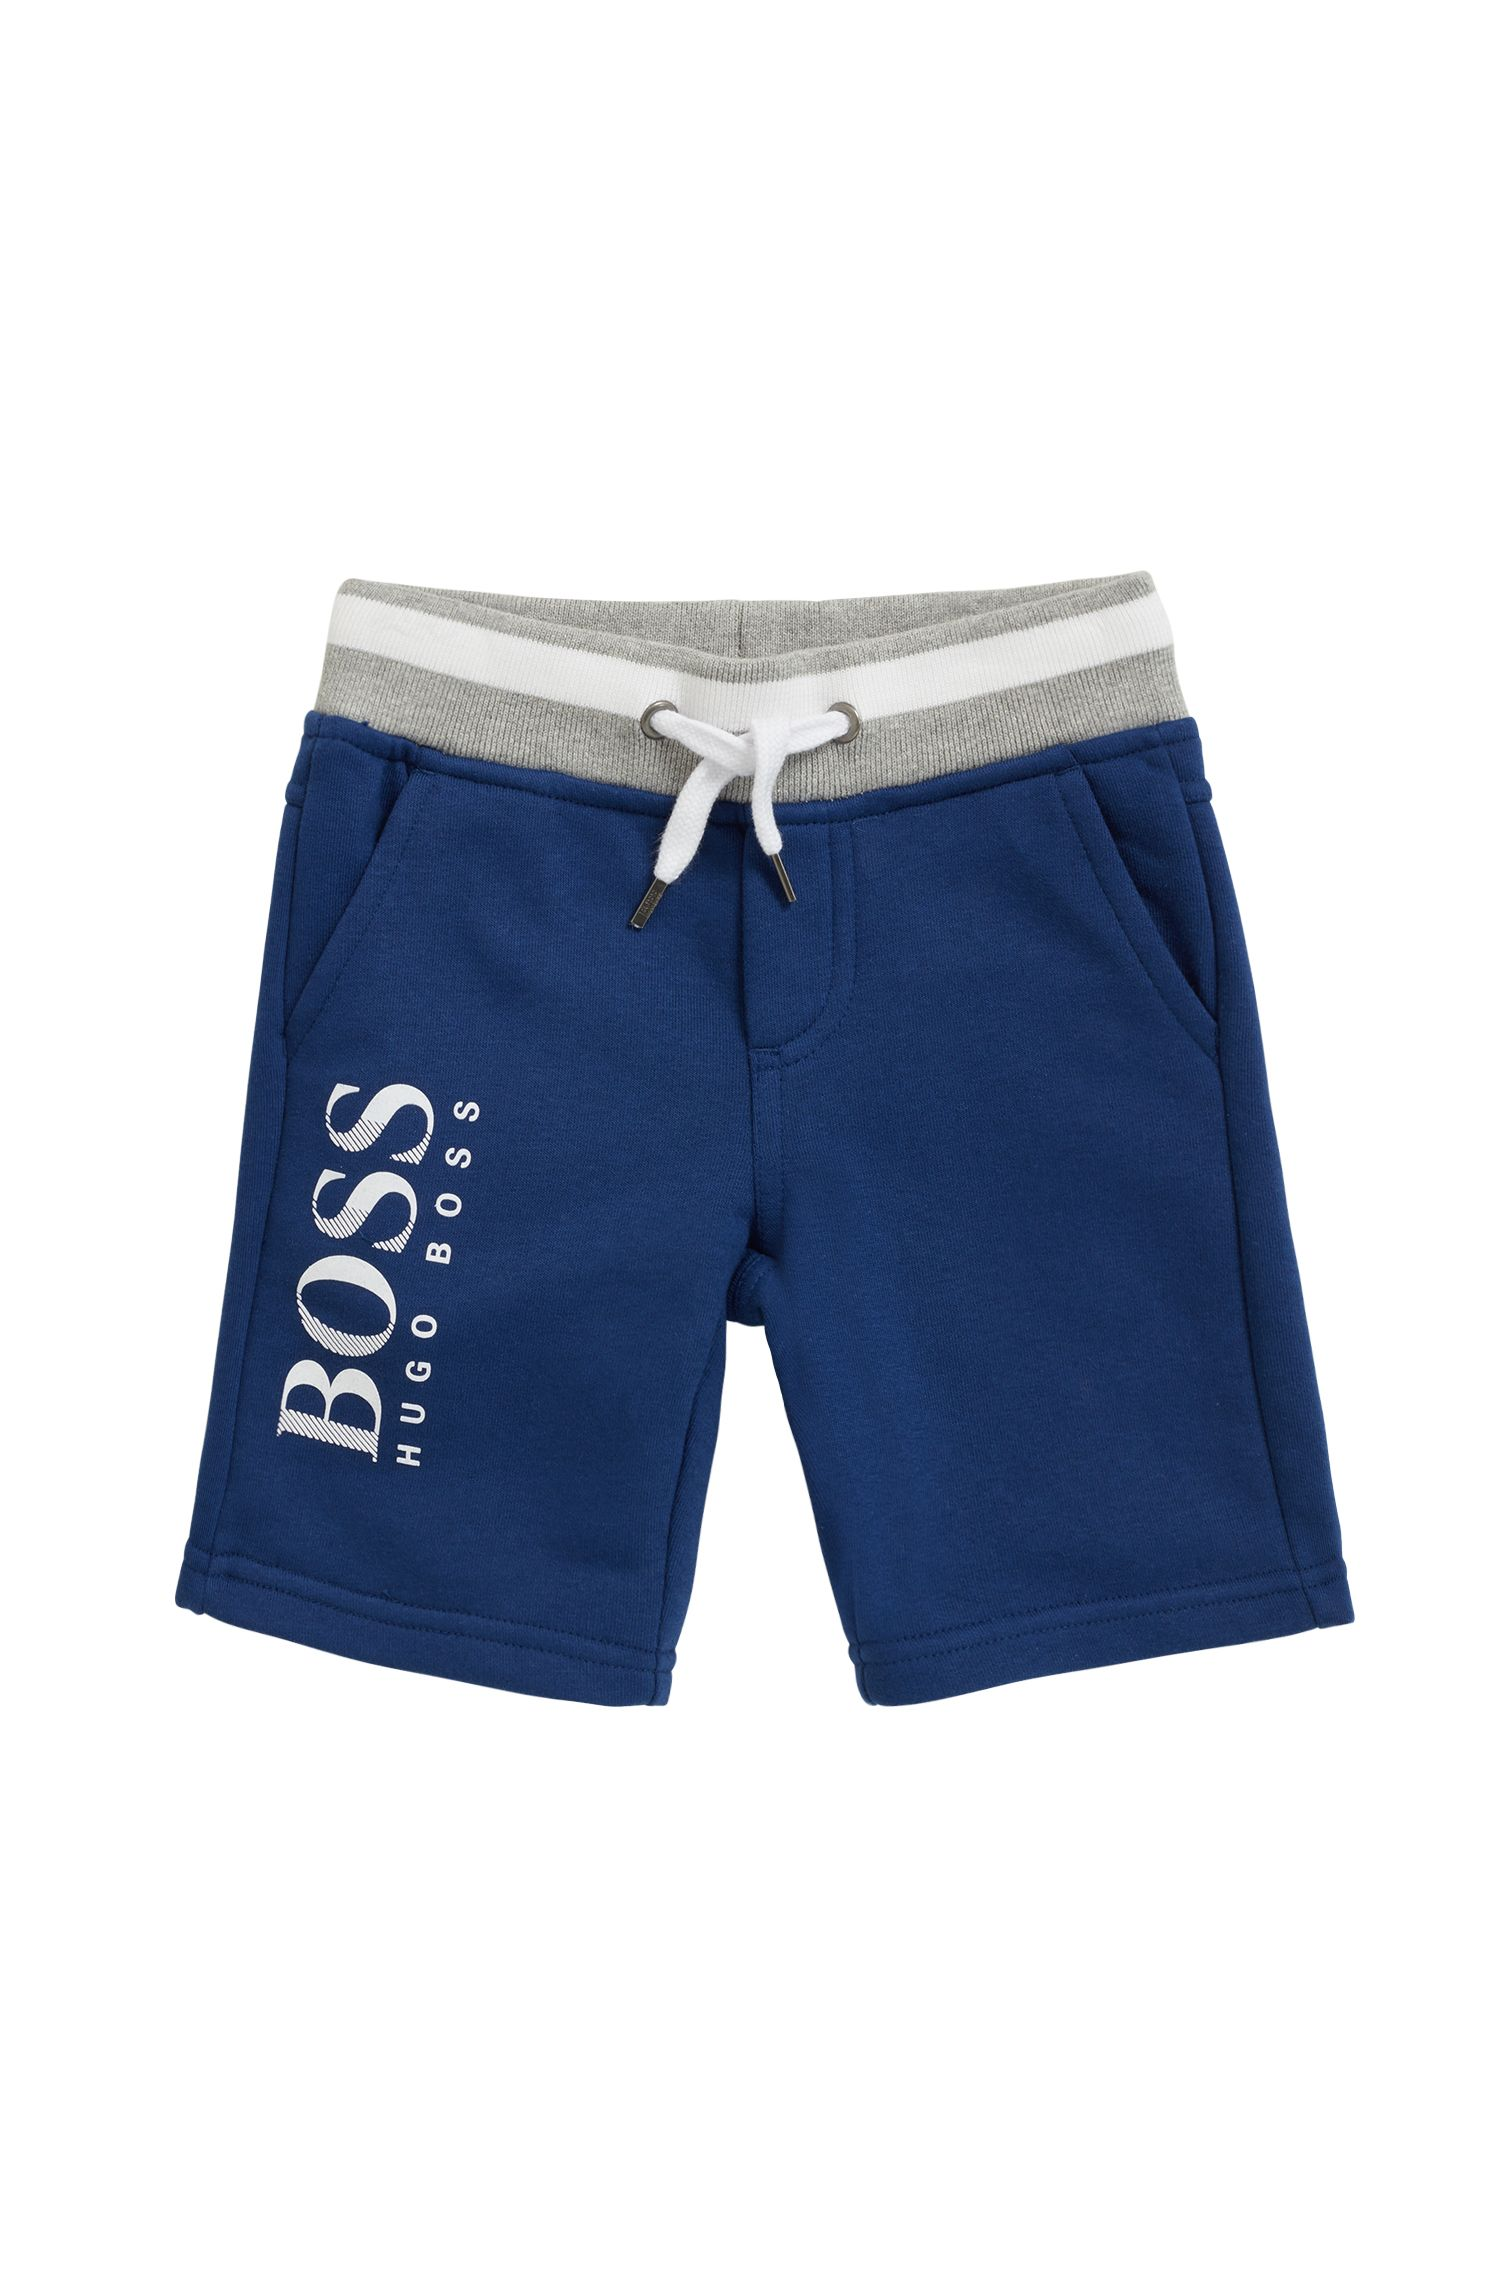 Kids' Bermuda shorts in French terry with logo print